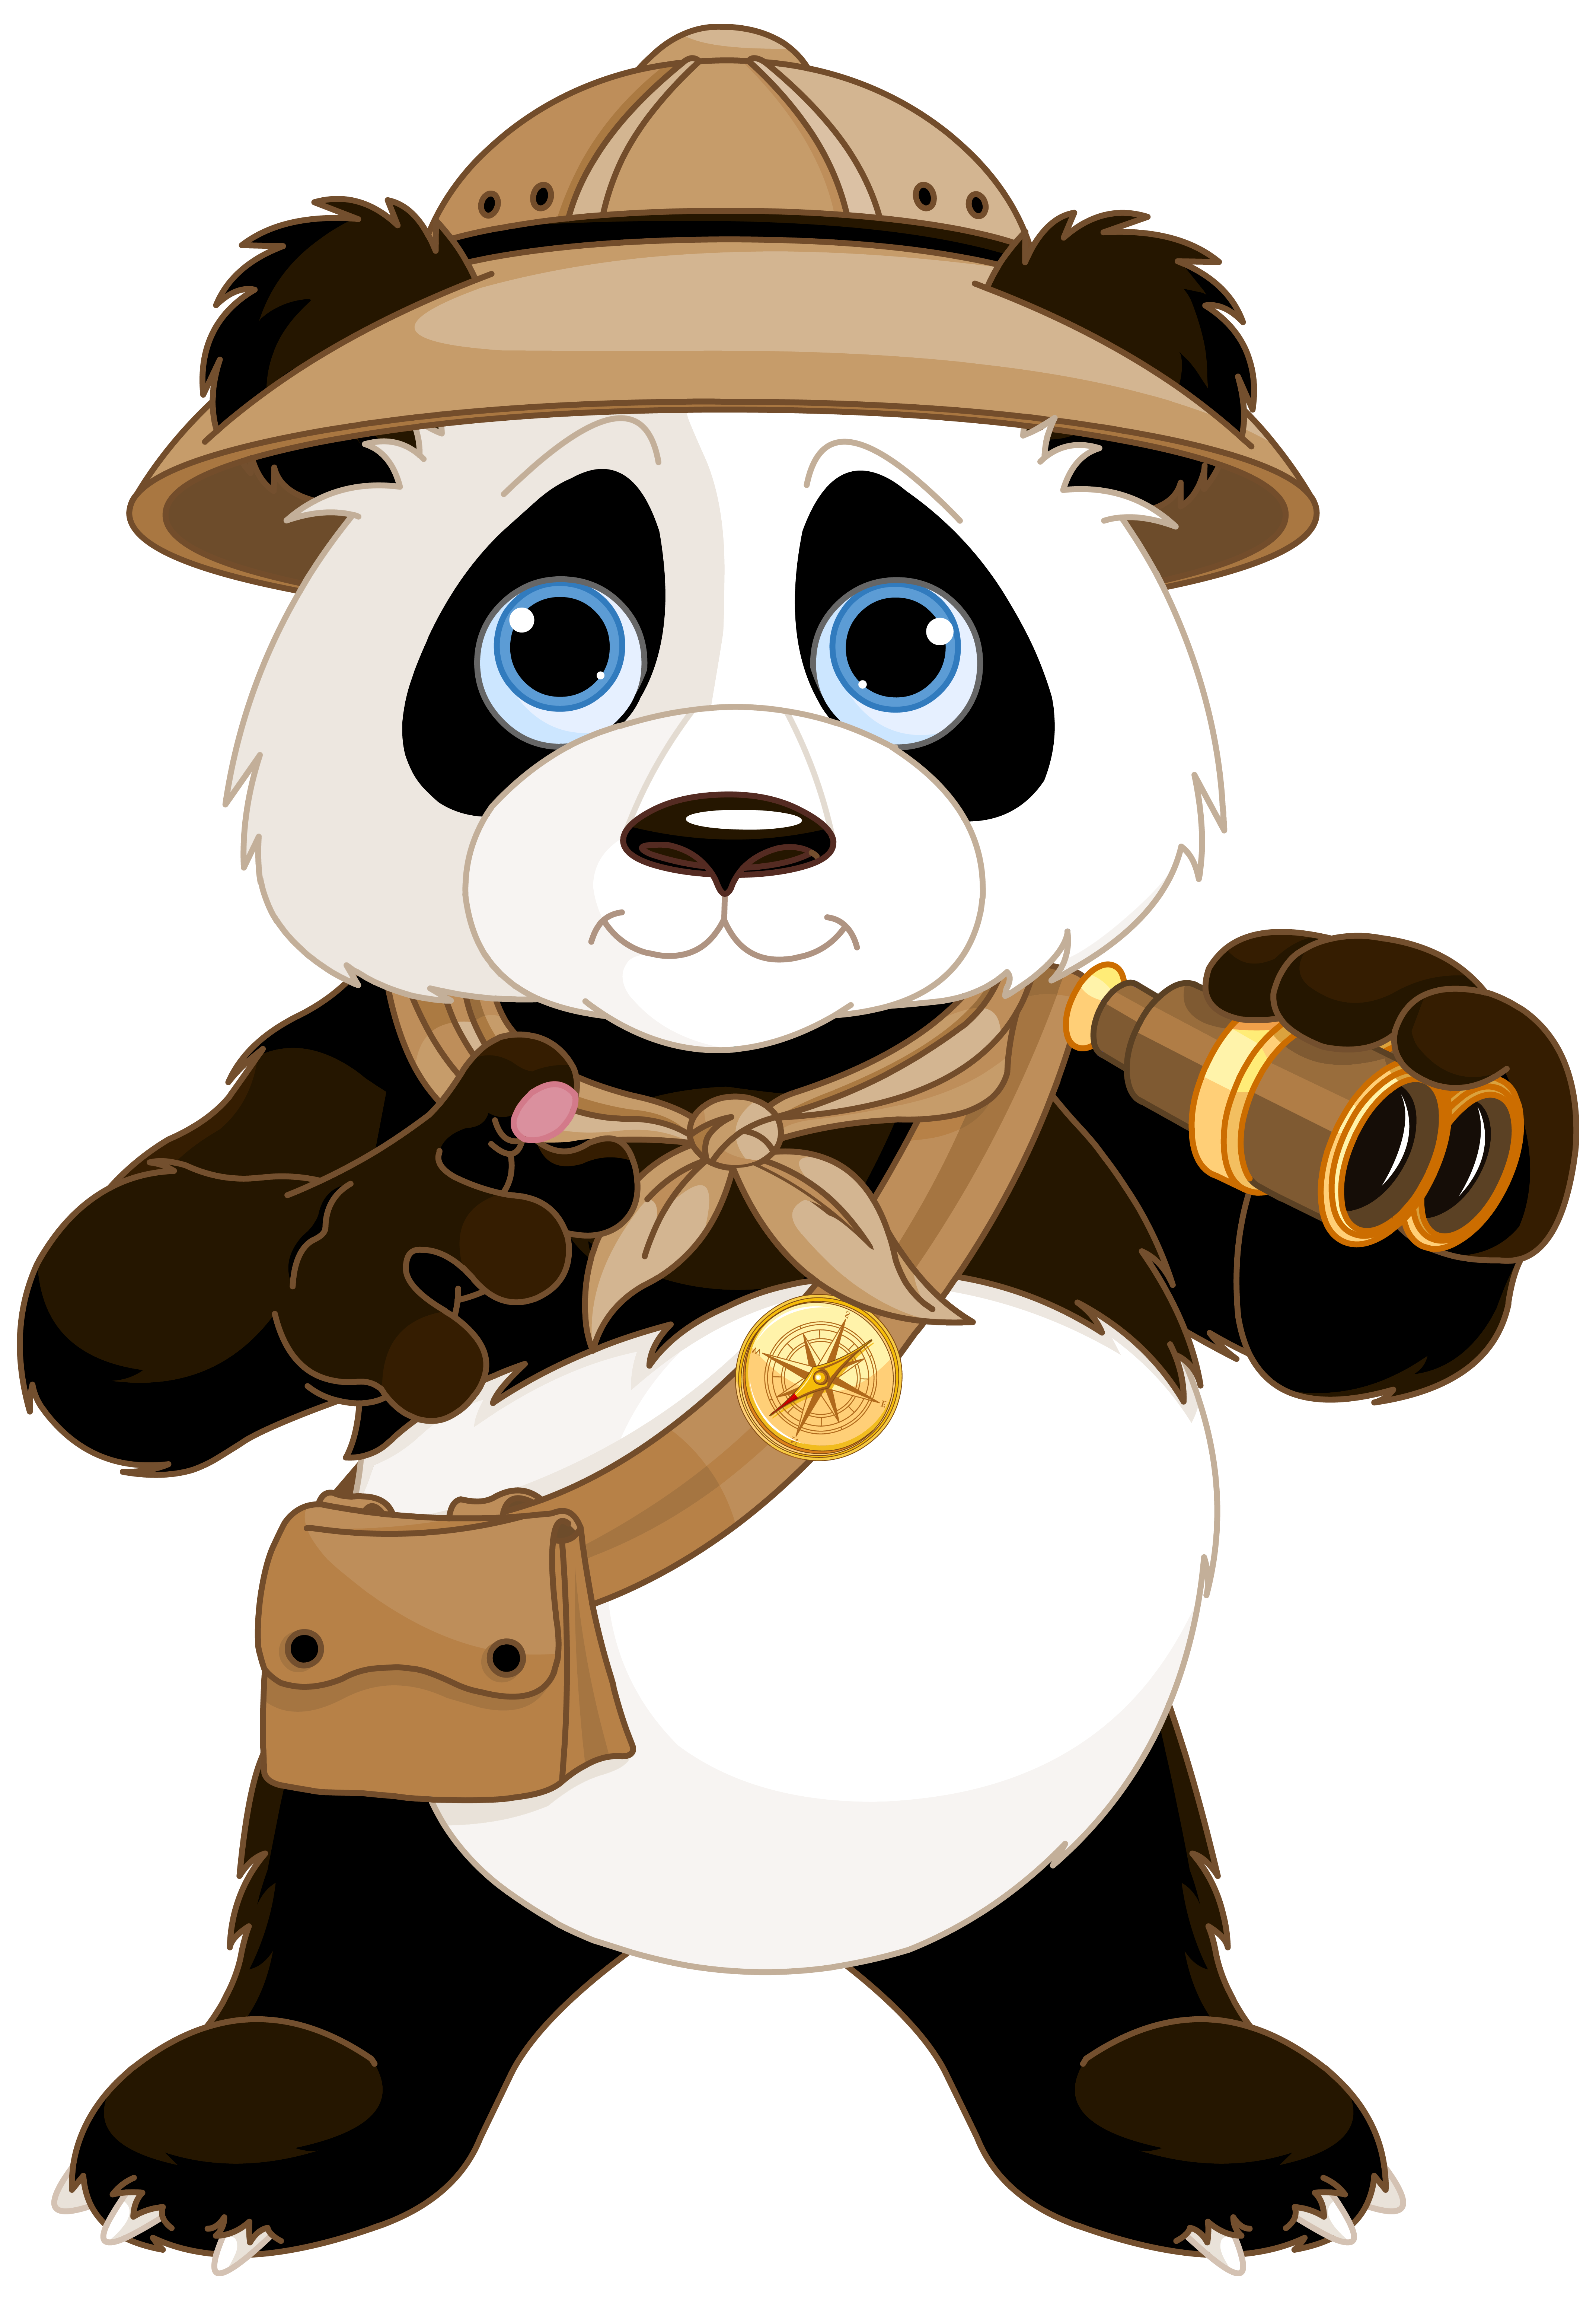 Panda clipart png. Cute image gallery yopriceville